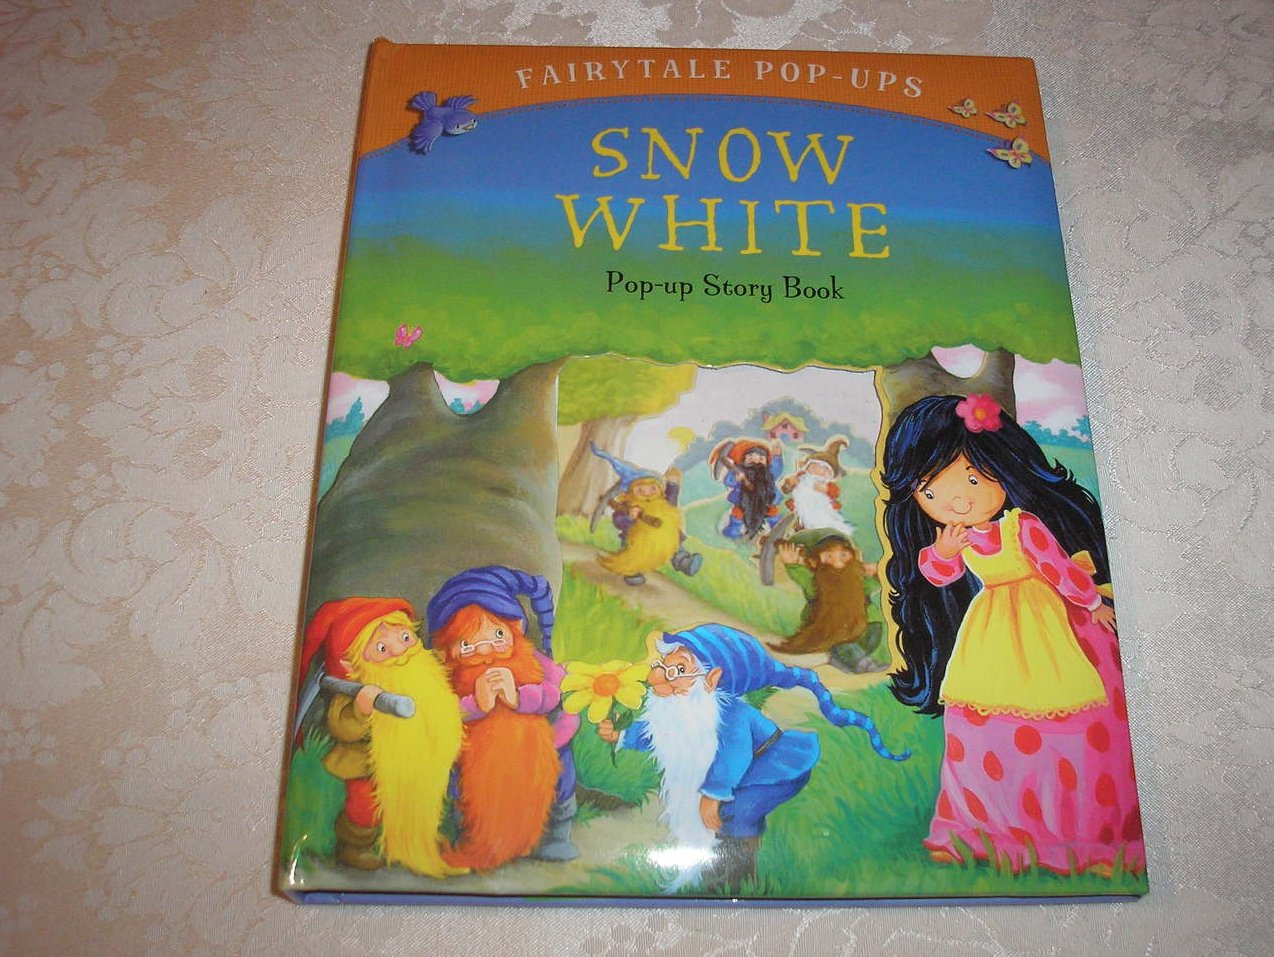 Snow White Fairytale Pop-Ups brand new hc